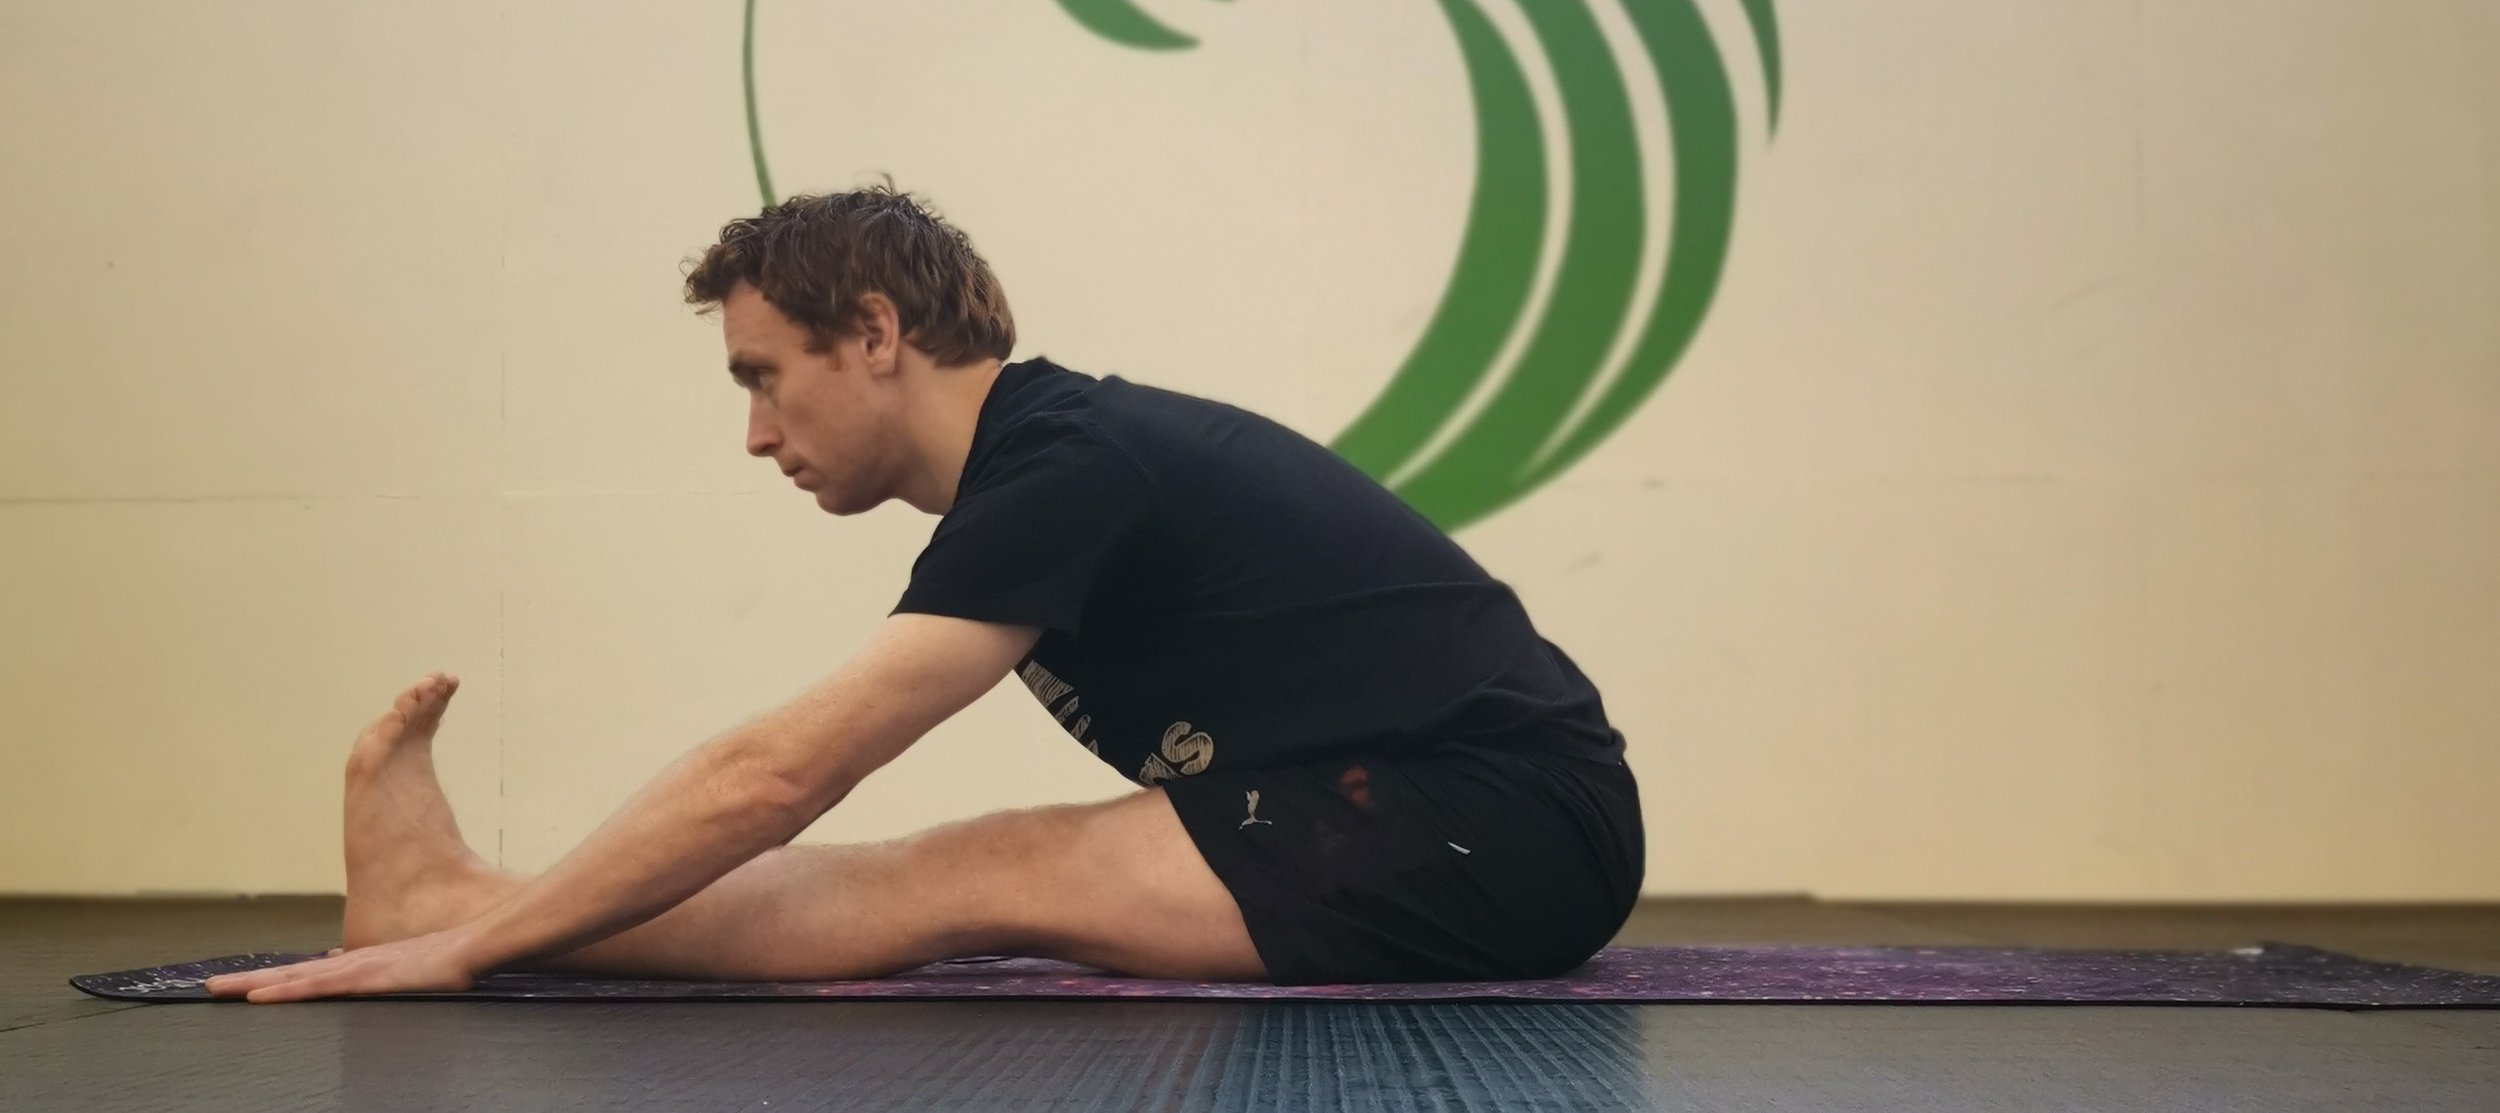 With Inhale Spinal Extension